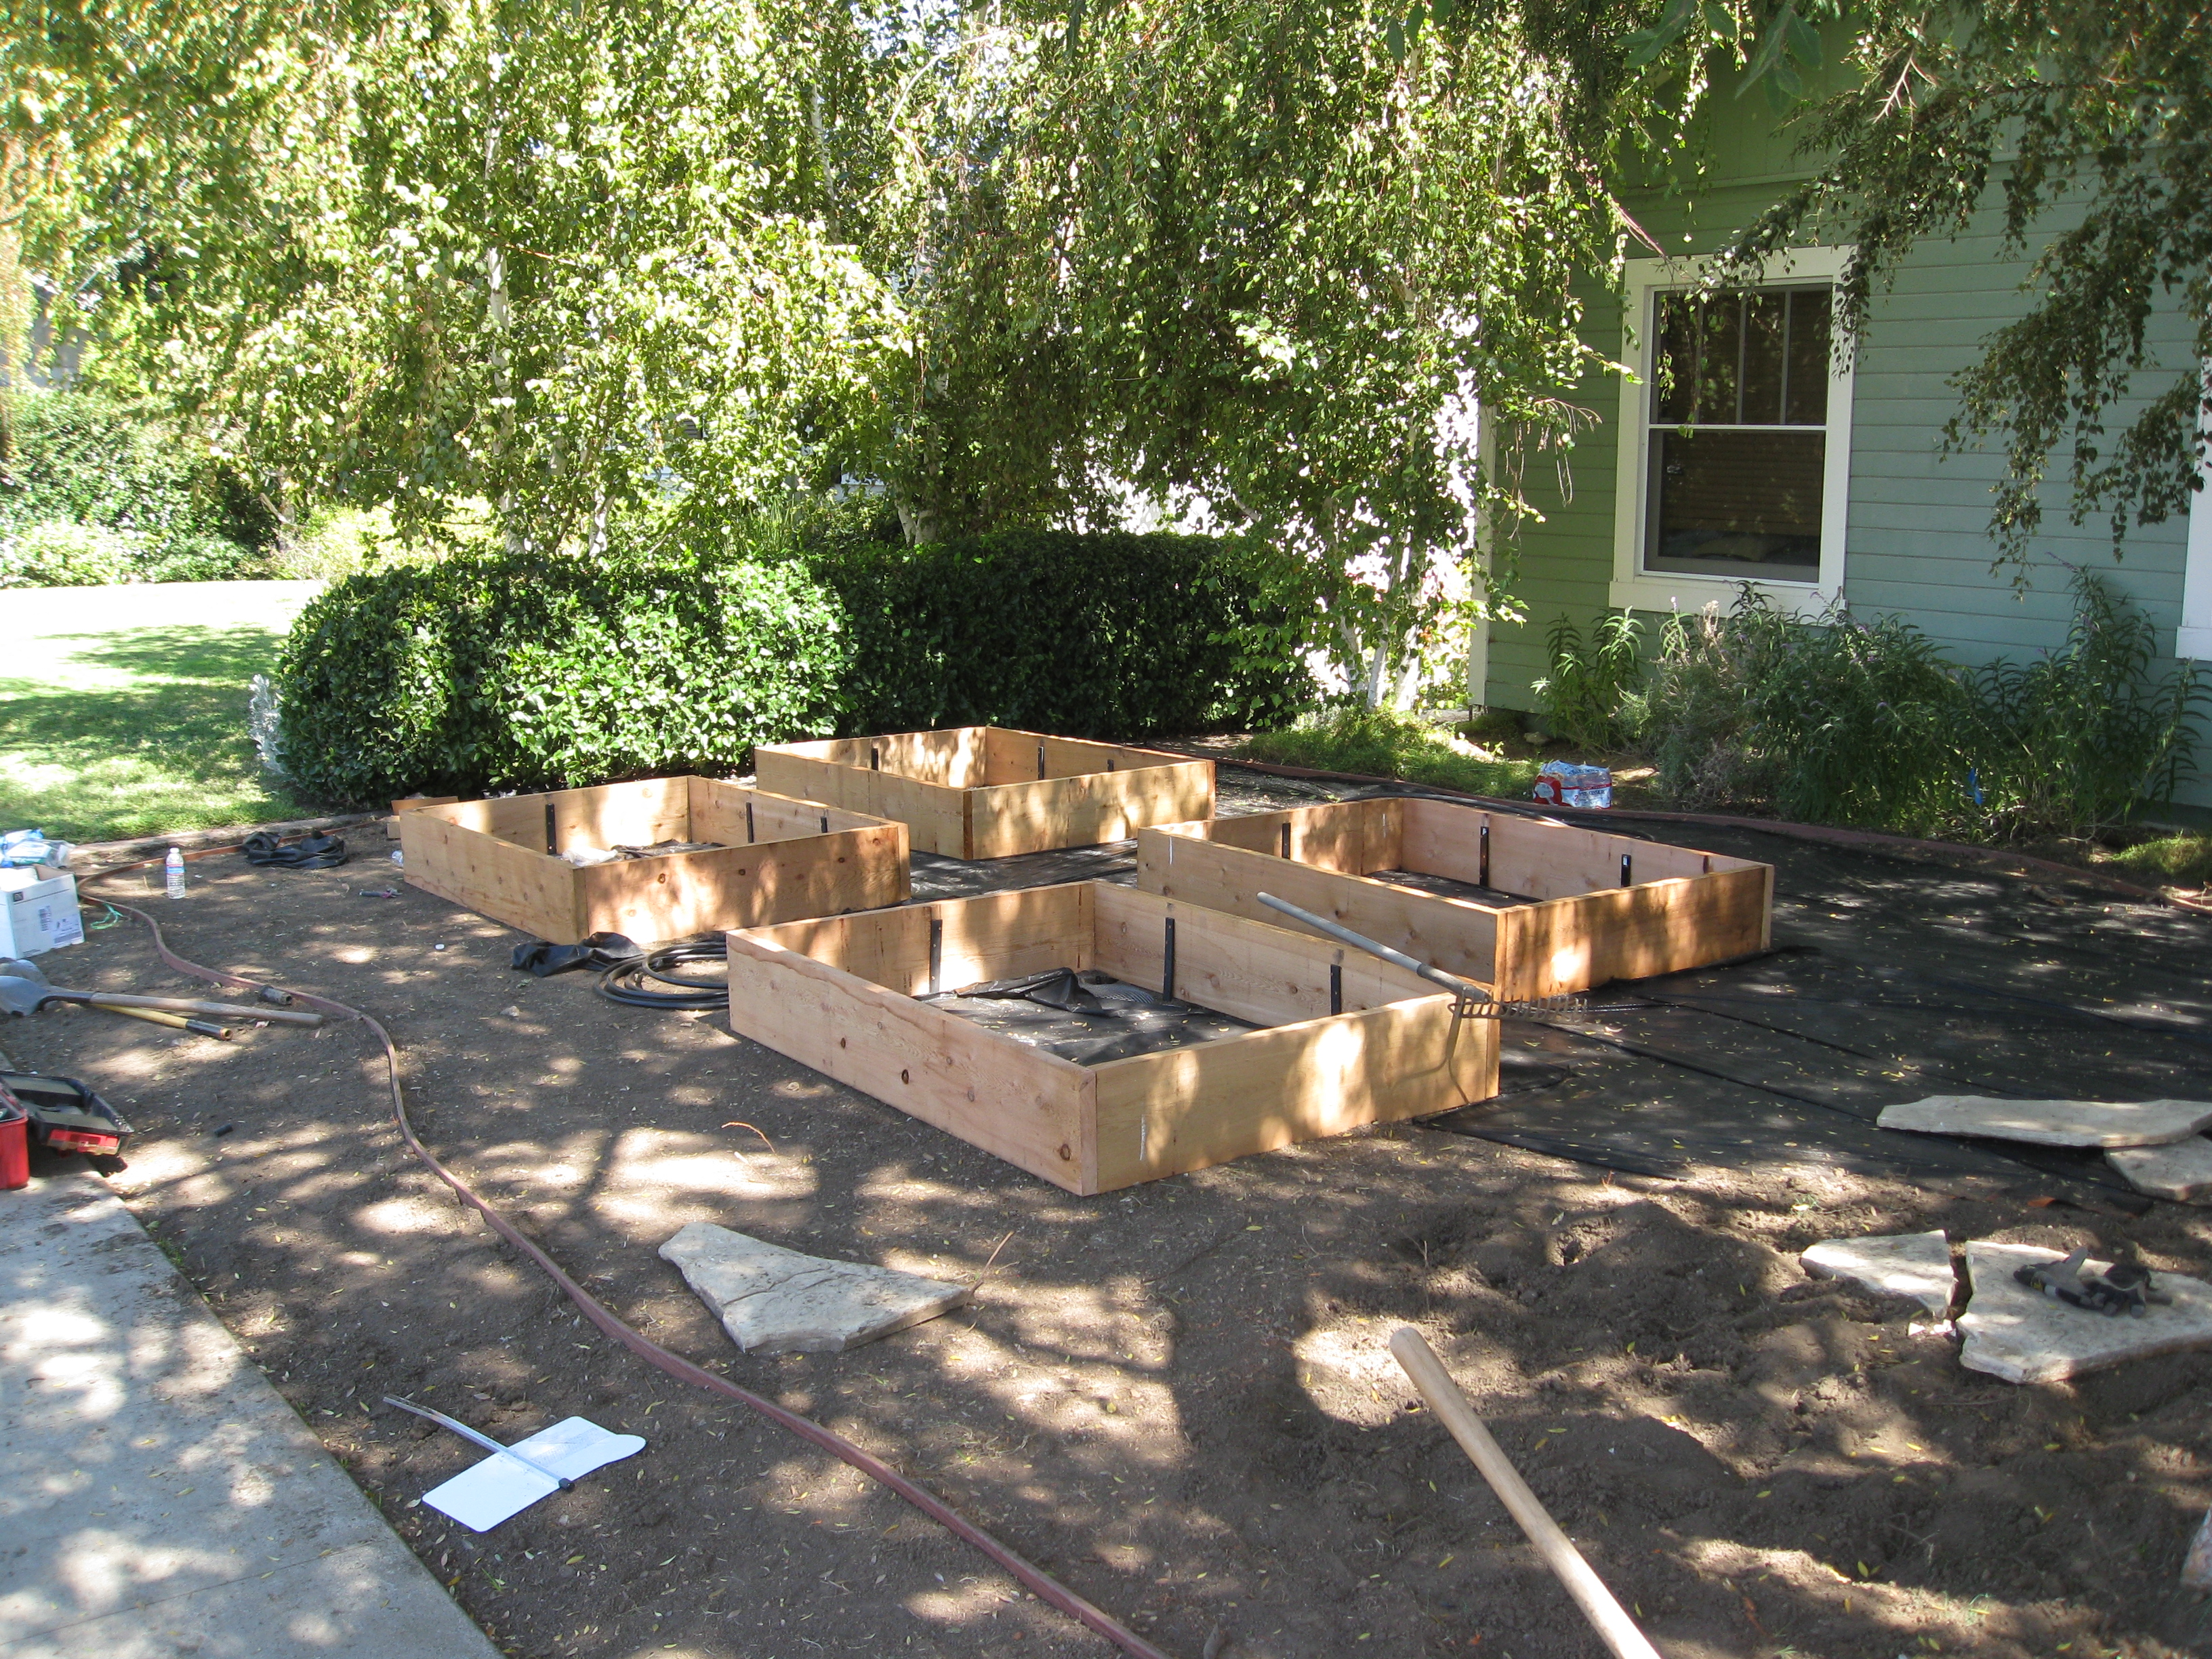 New raised beds will offer productive food gardening for the family.